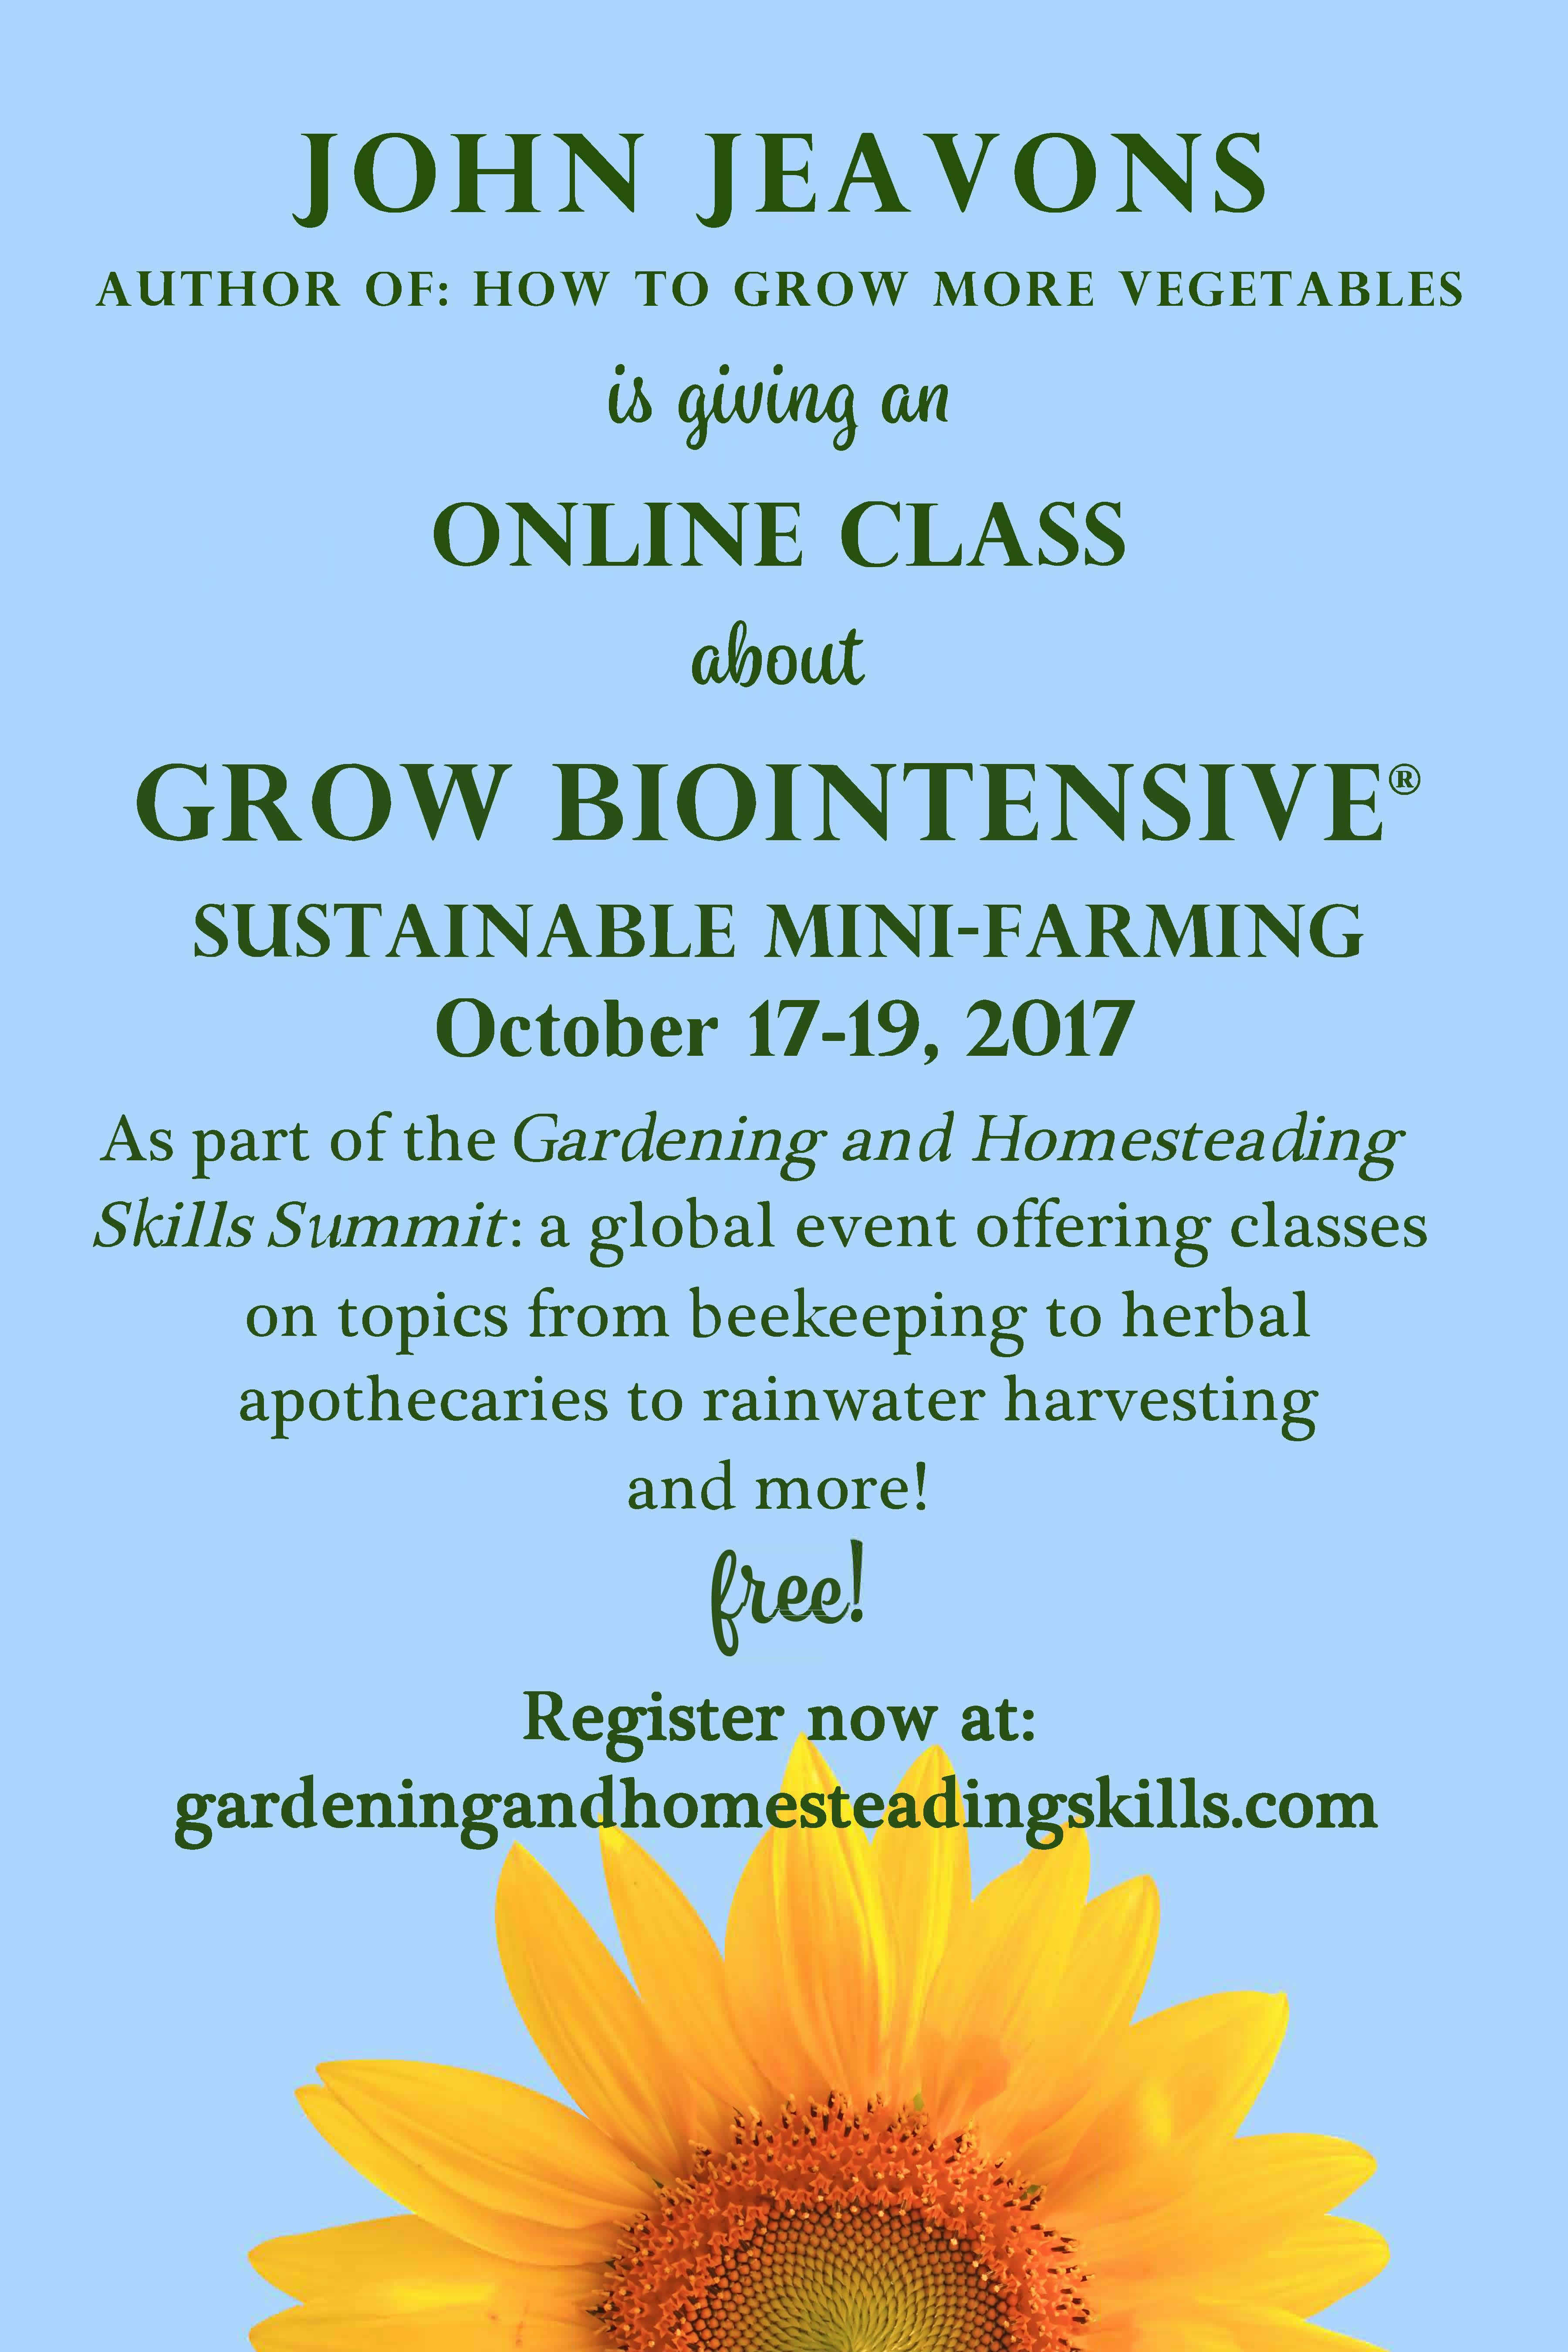 John Jeavons online class as part of the Gardening and Homesteading Skills Summit - a global event offering classes on topics from beekeeping and herbal apothecaries to rainwater harvesting and more! FREE! Register now at gardeningandhomesteadingskills.com